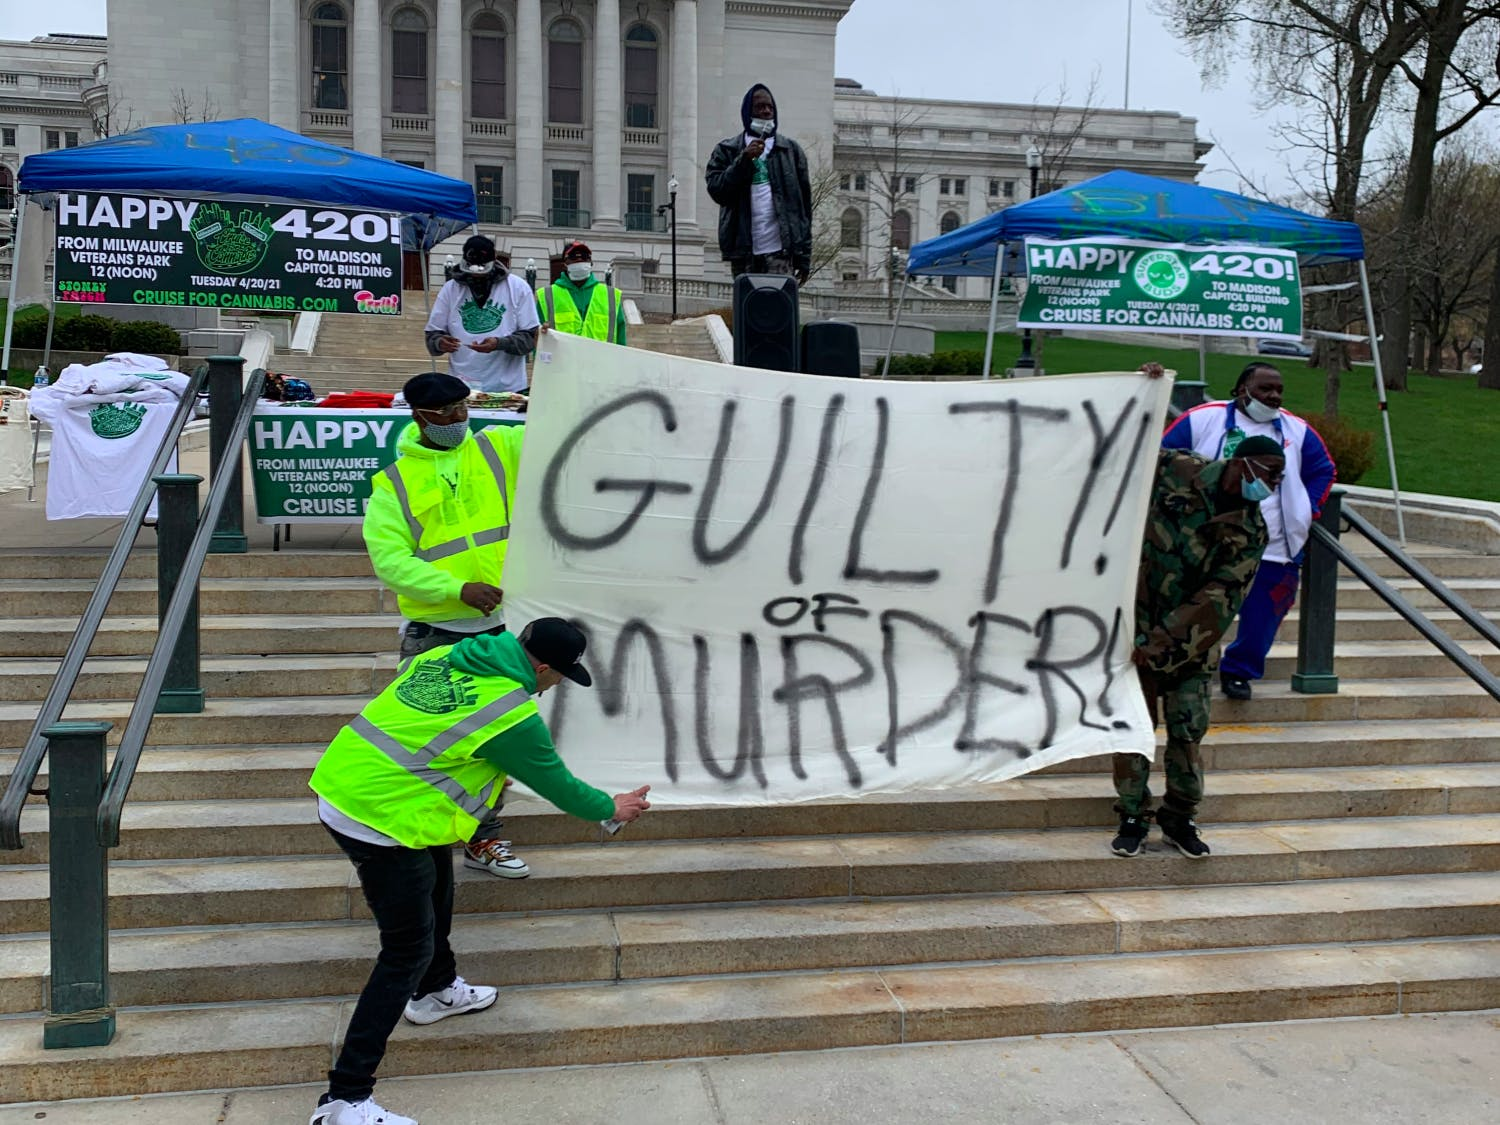 """Photo of a group of men holding up a sign that says """"Guilty of Murder"""" in reference to the Chauvin trial."""